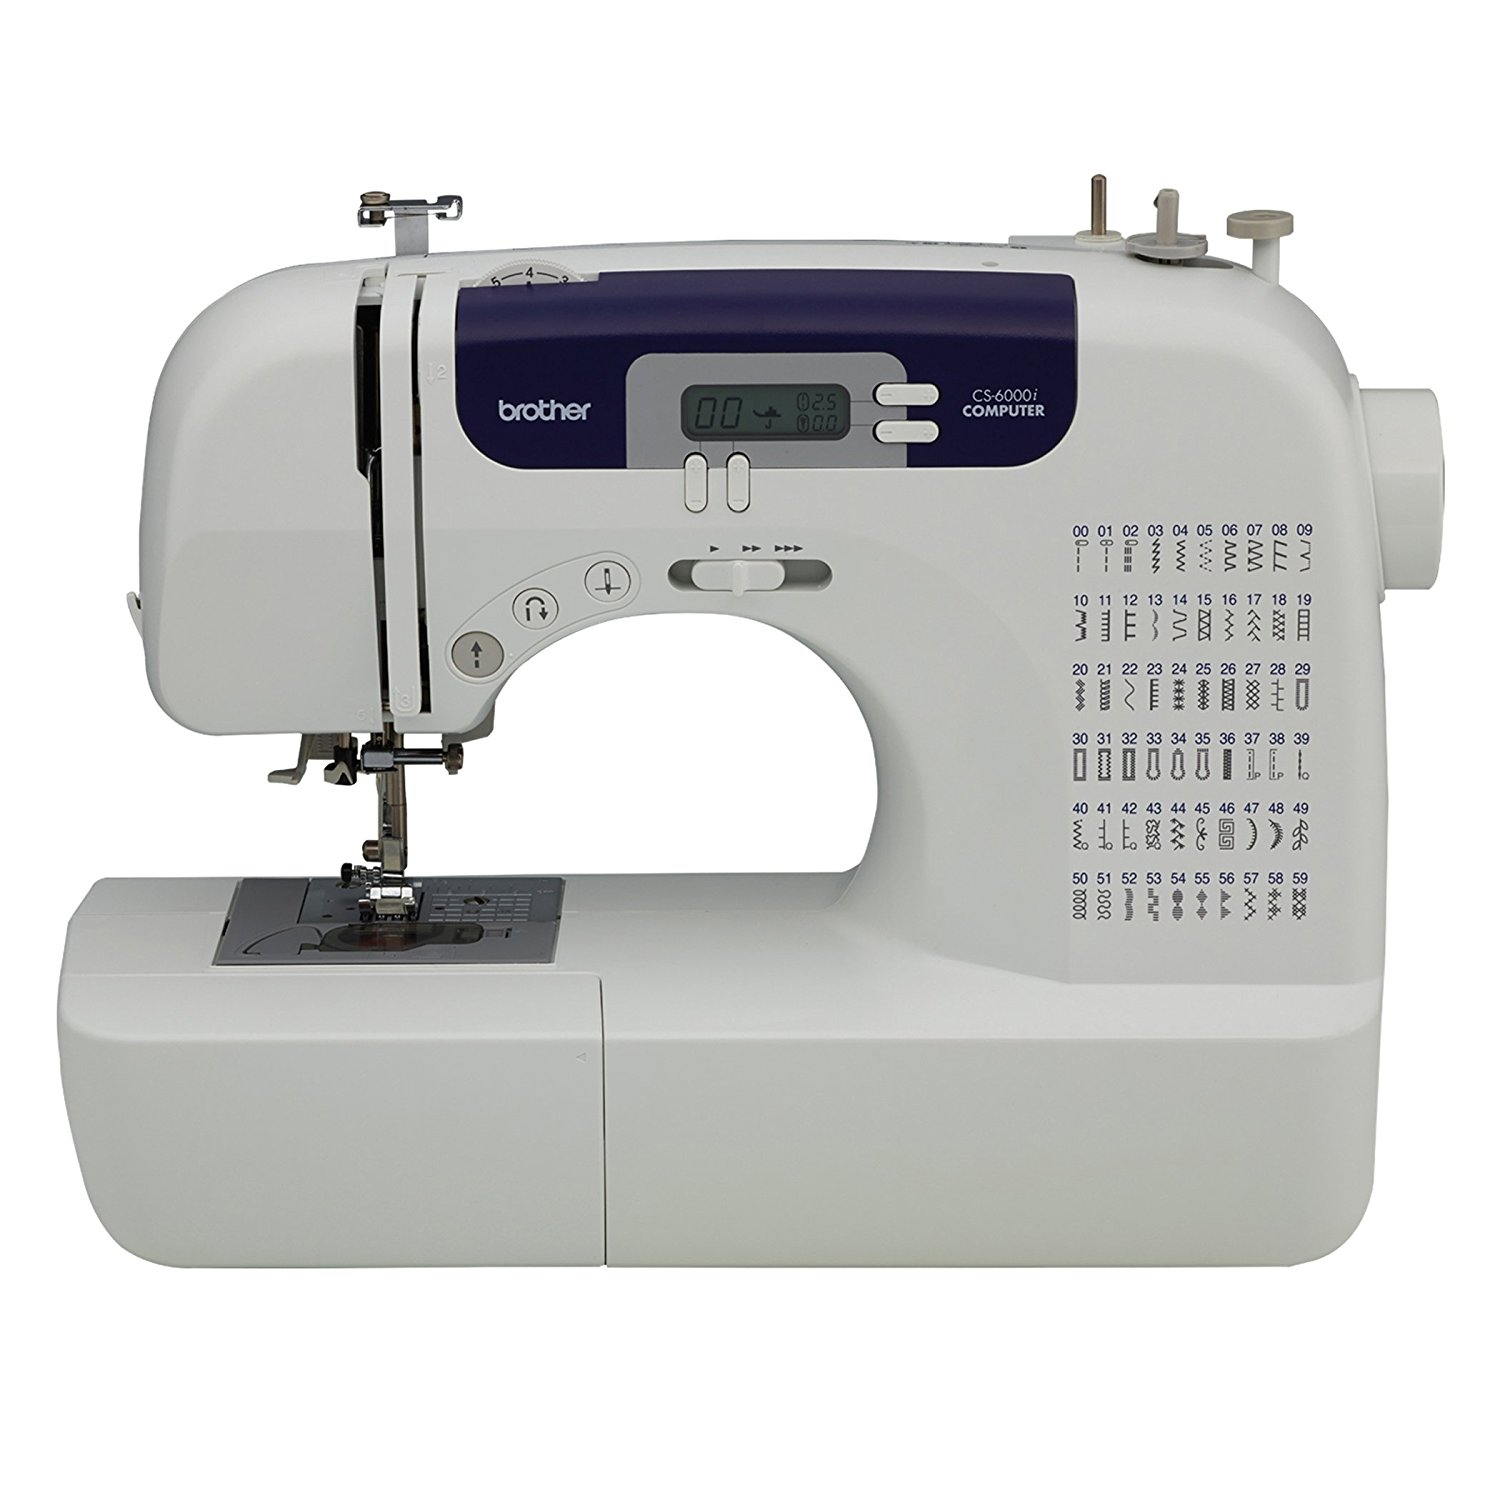 embroidery quilt quilting machine sewing couling elna machines expressive